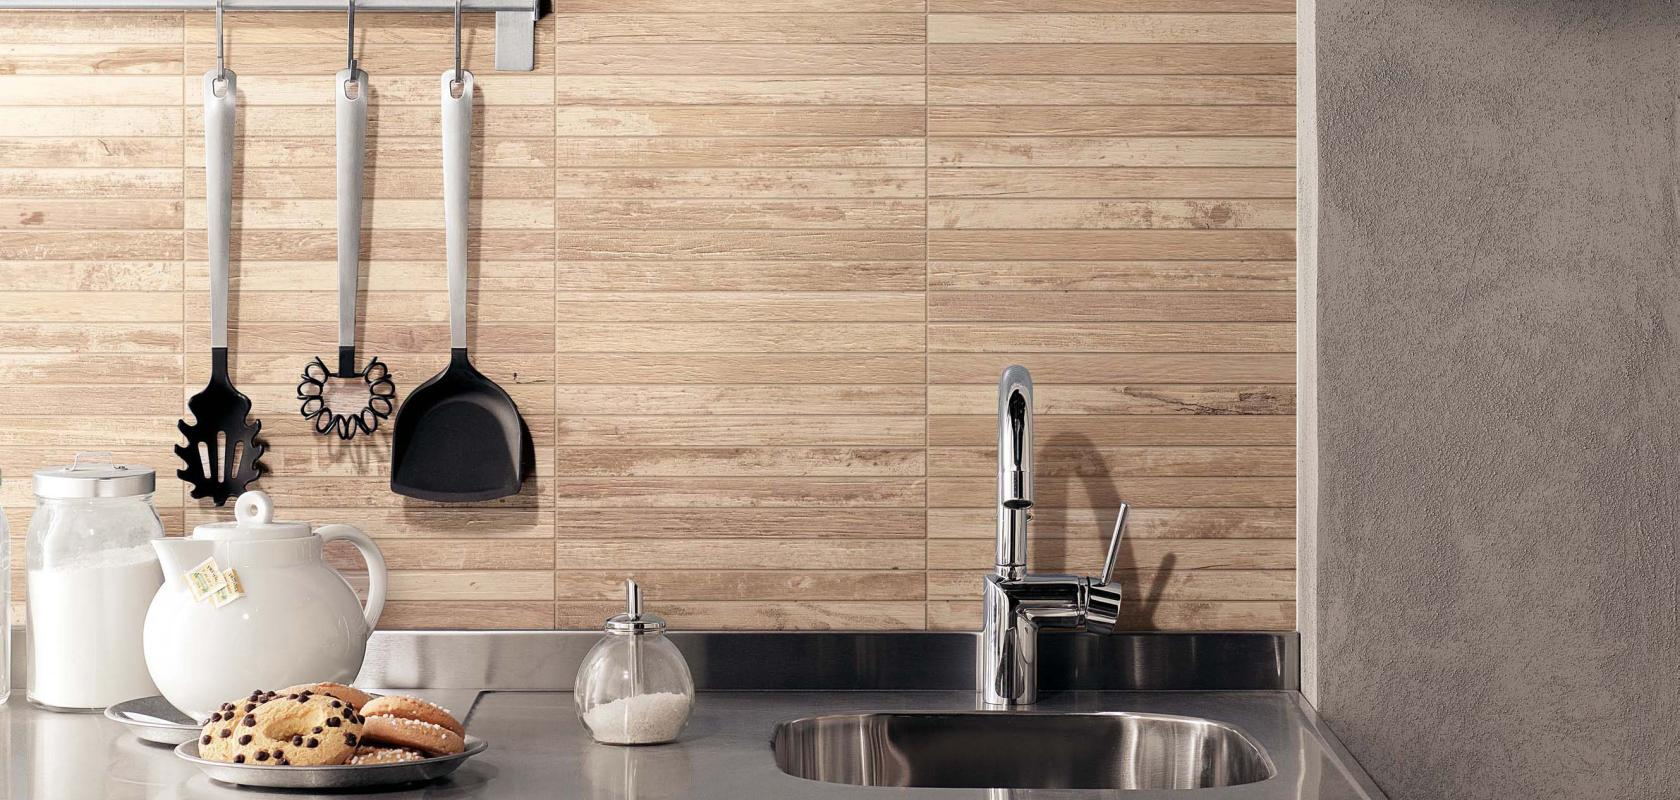 Awesome Piastrelle Rivestimento Cucina Classica Pictures - Ideas ...